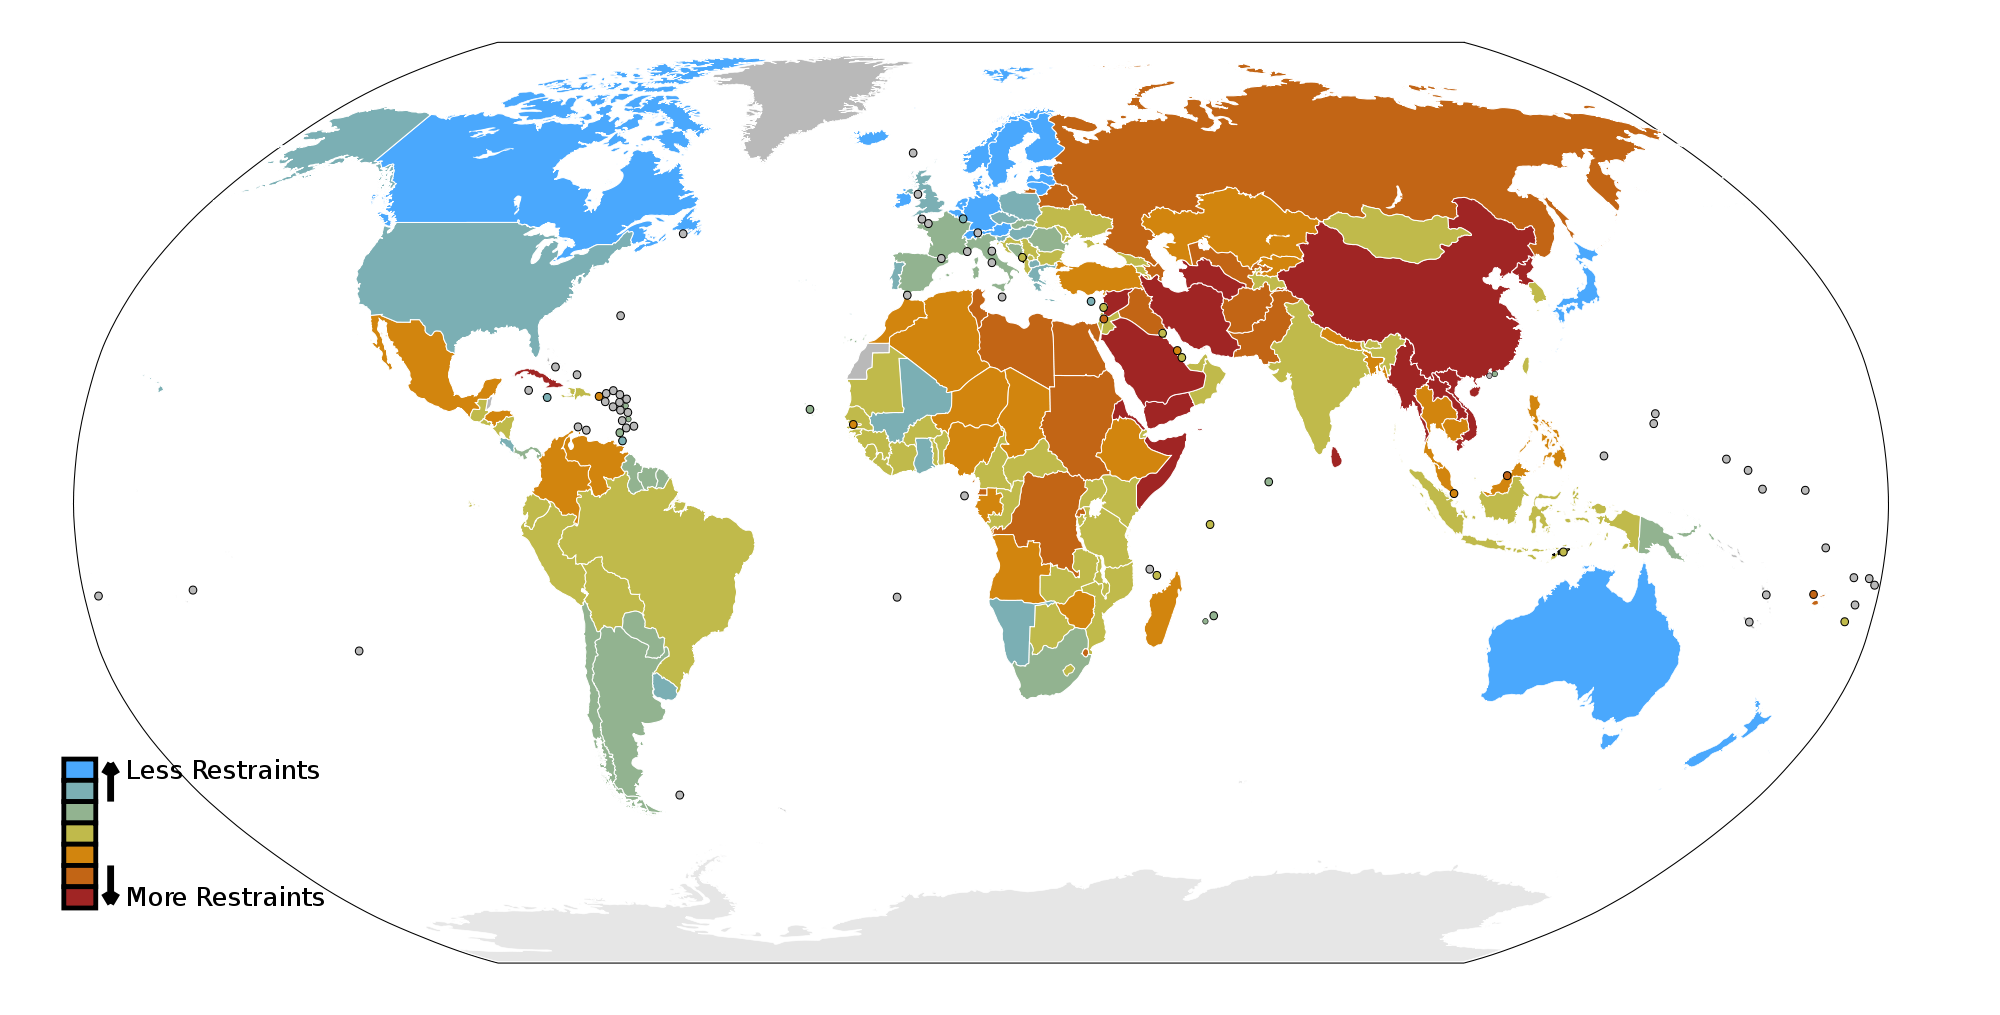 Press Freedom in the World 2009